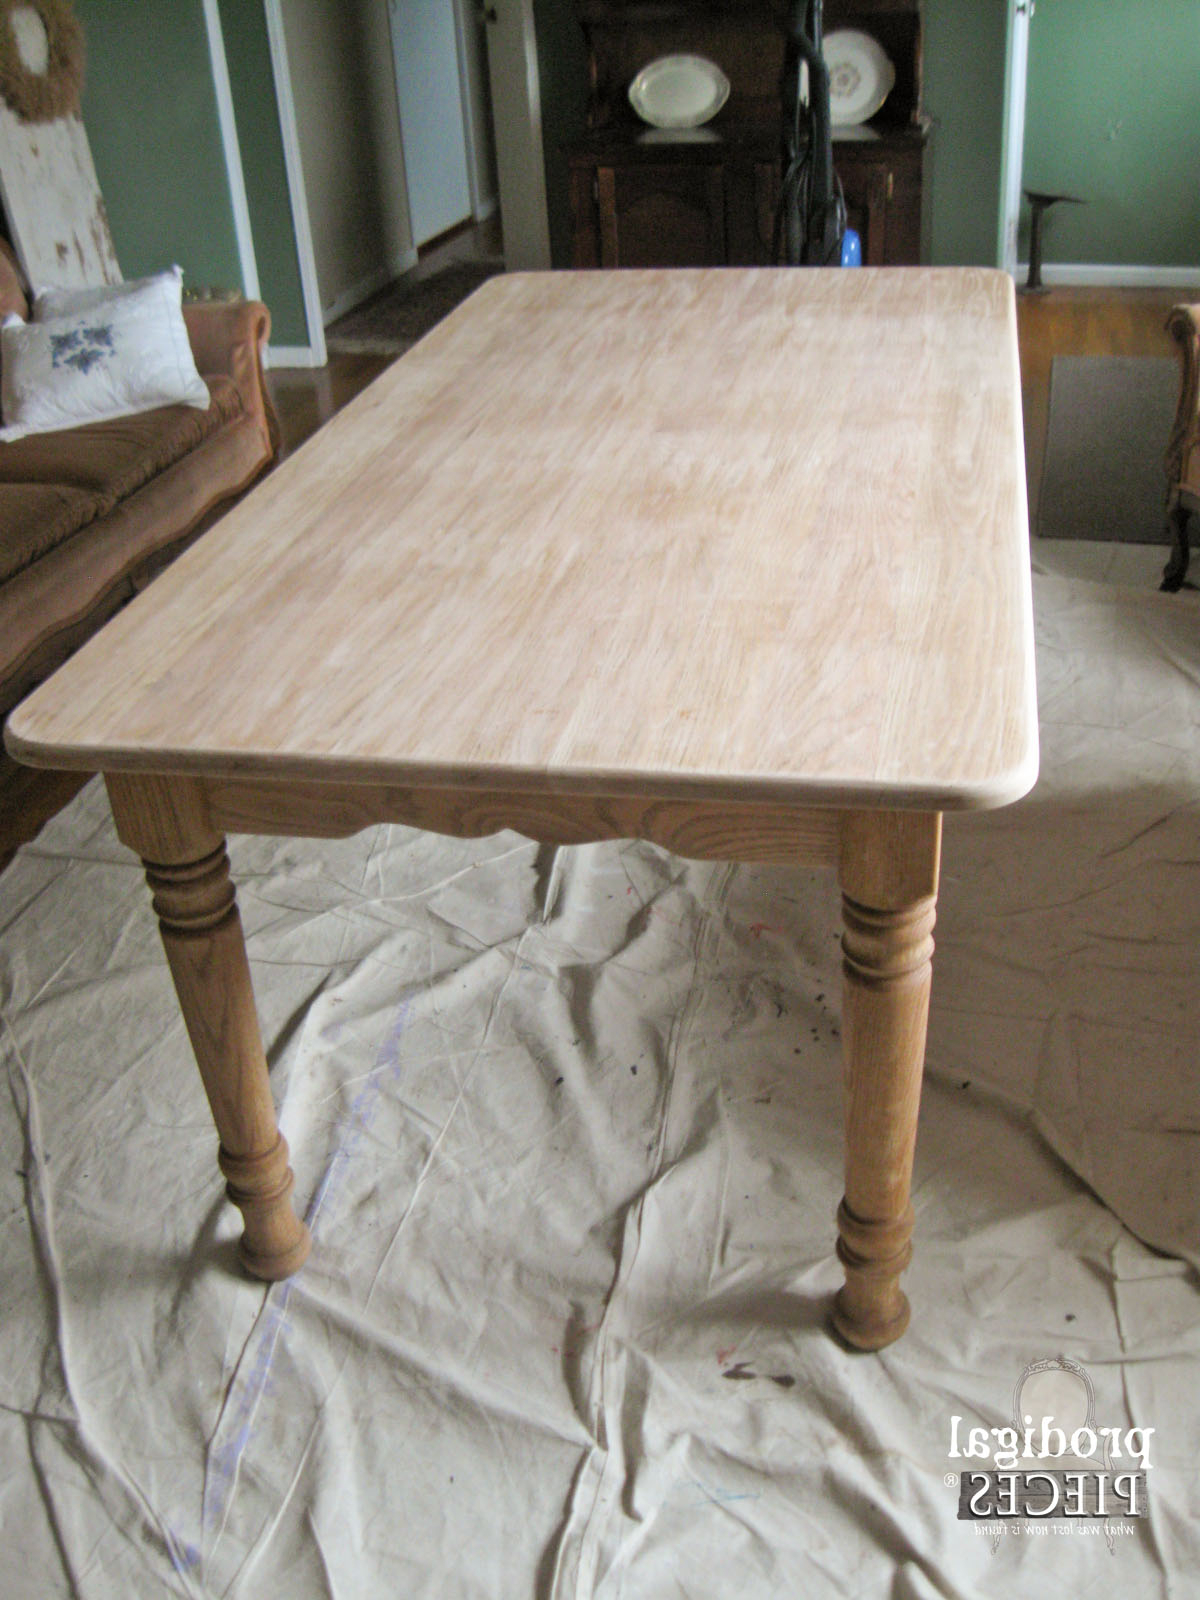 Limewash Coffee Tables Intended For Famous Whitewashed (Or Limewashed) Wood – Prodigal Pieces (Gallery 5 of 20)